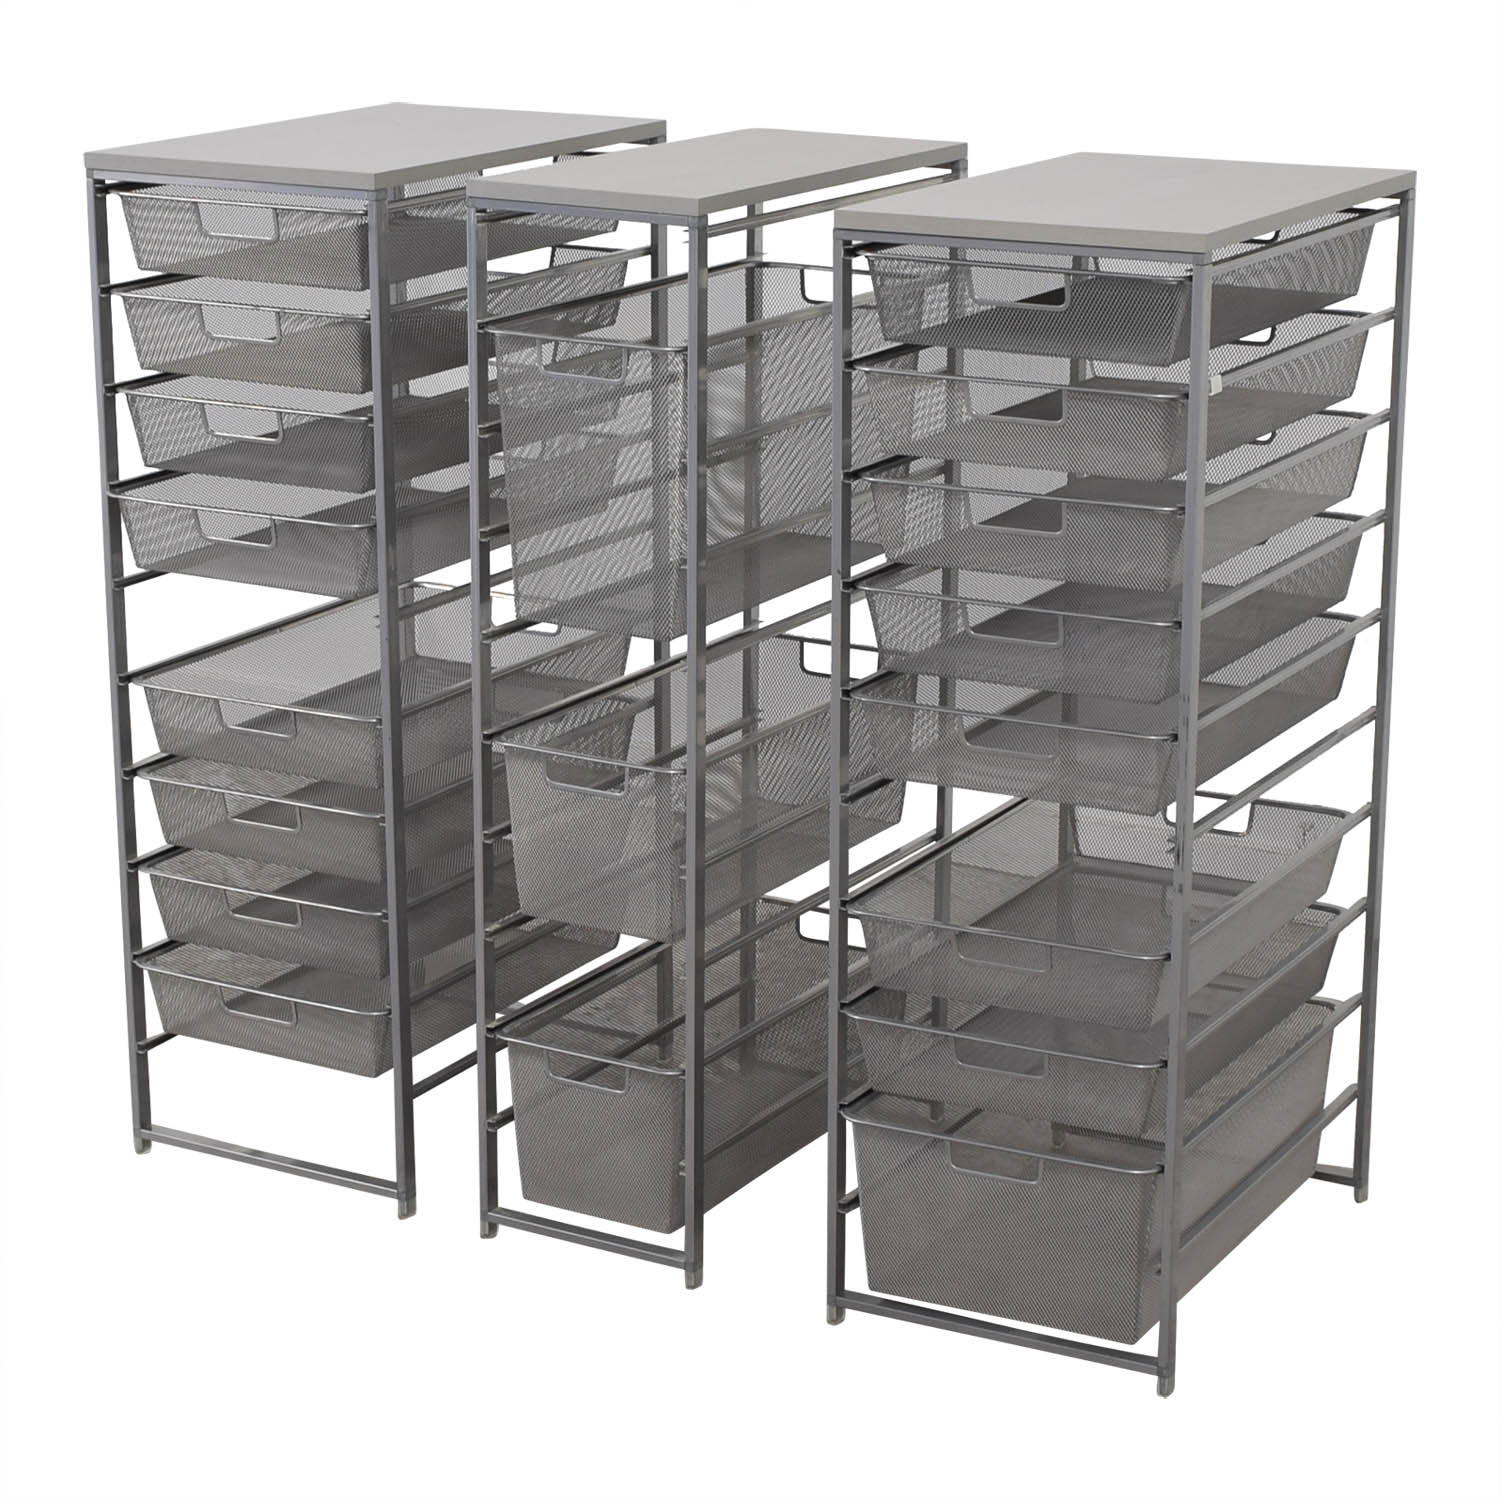 Container Store Metal Wire Organizational Storage / Filing & Bins